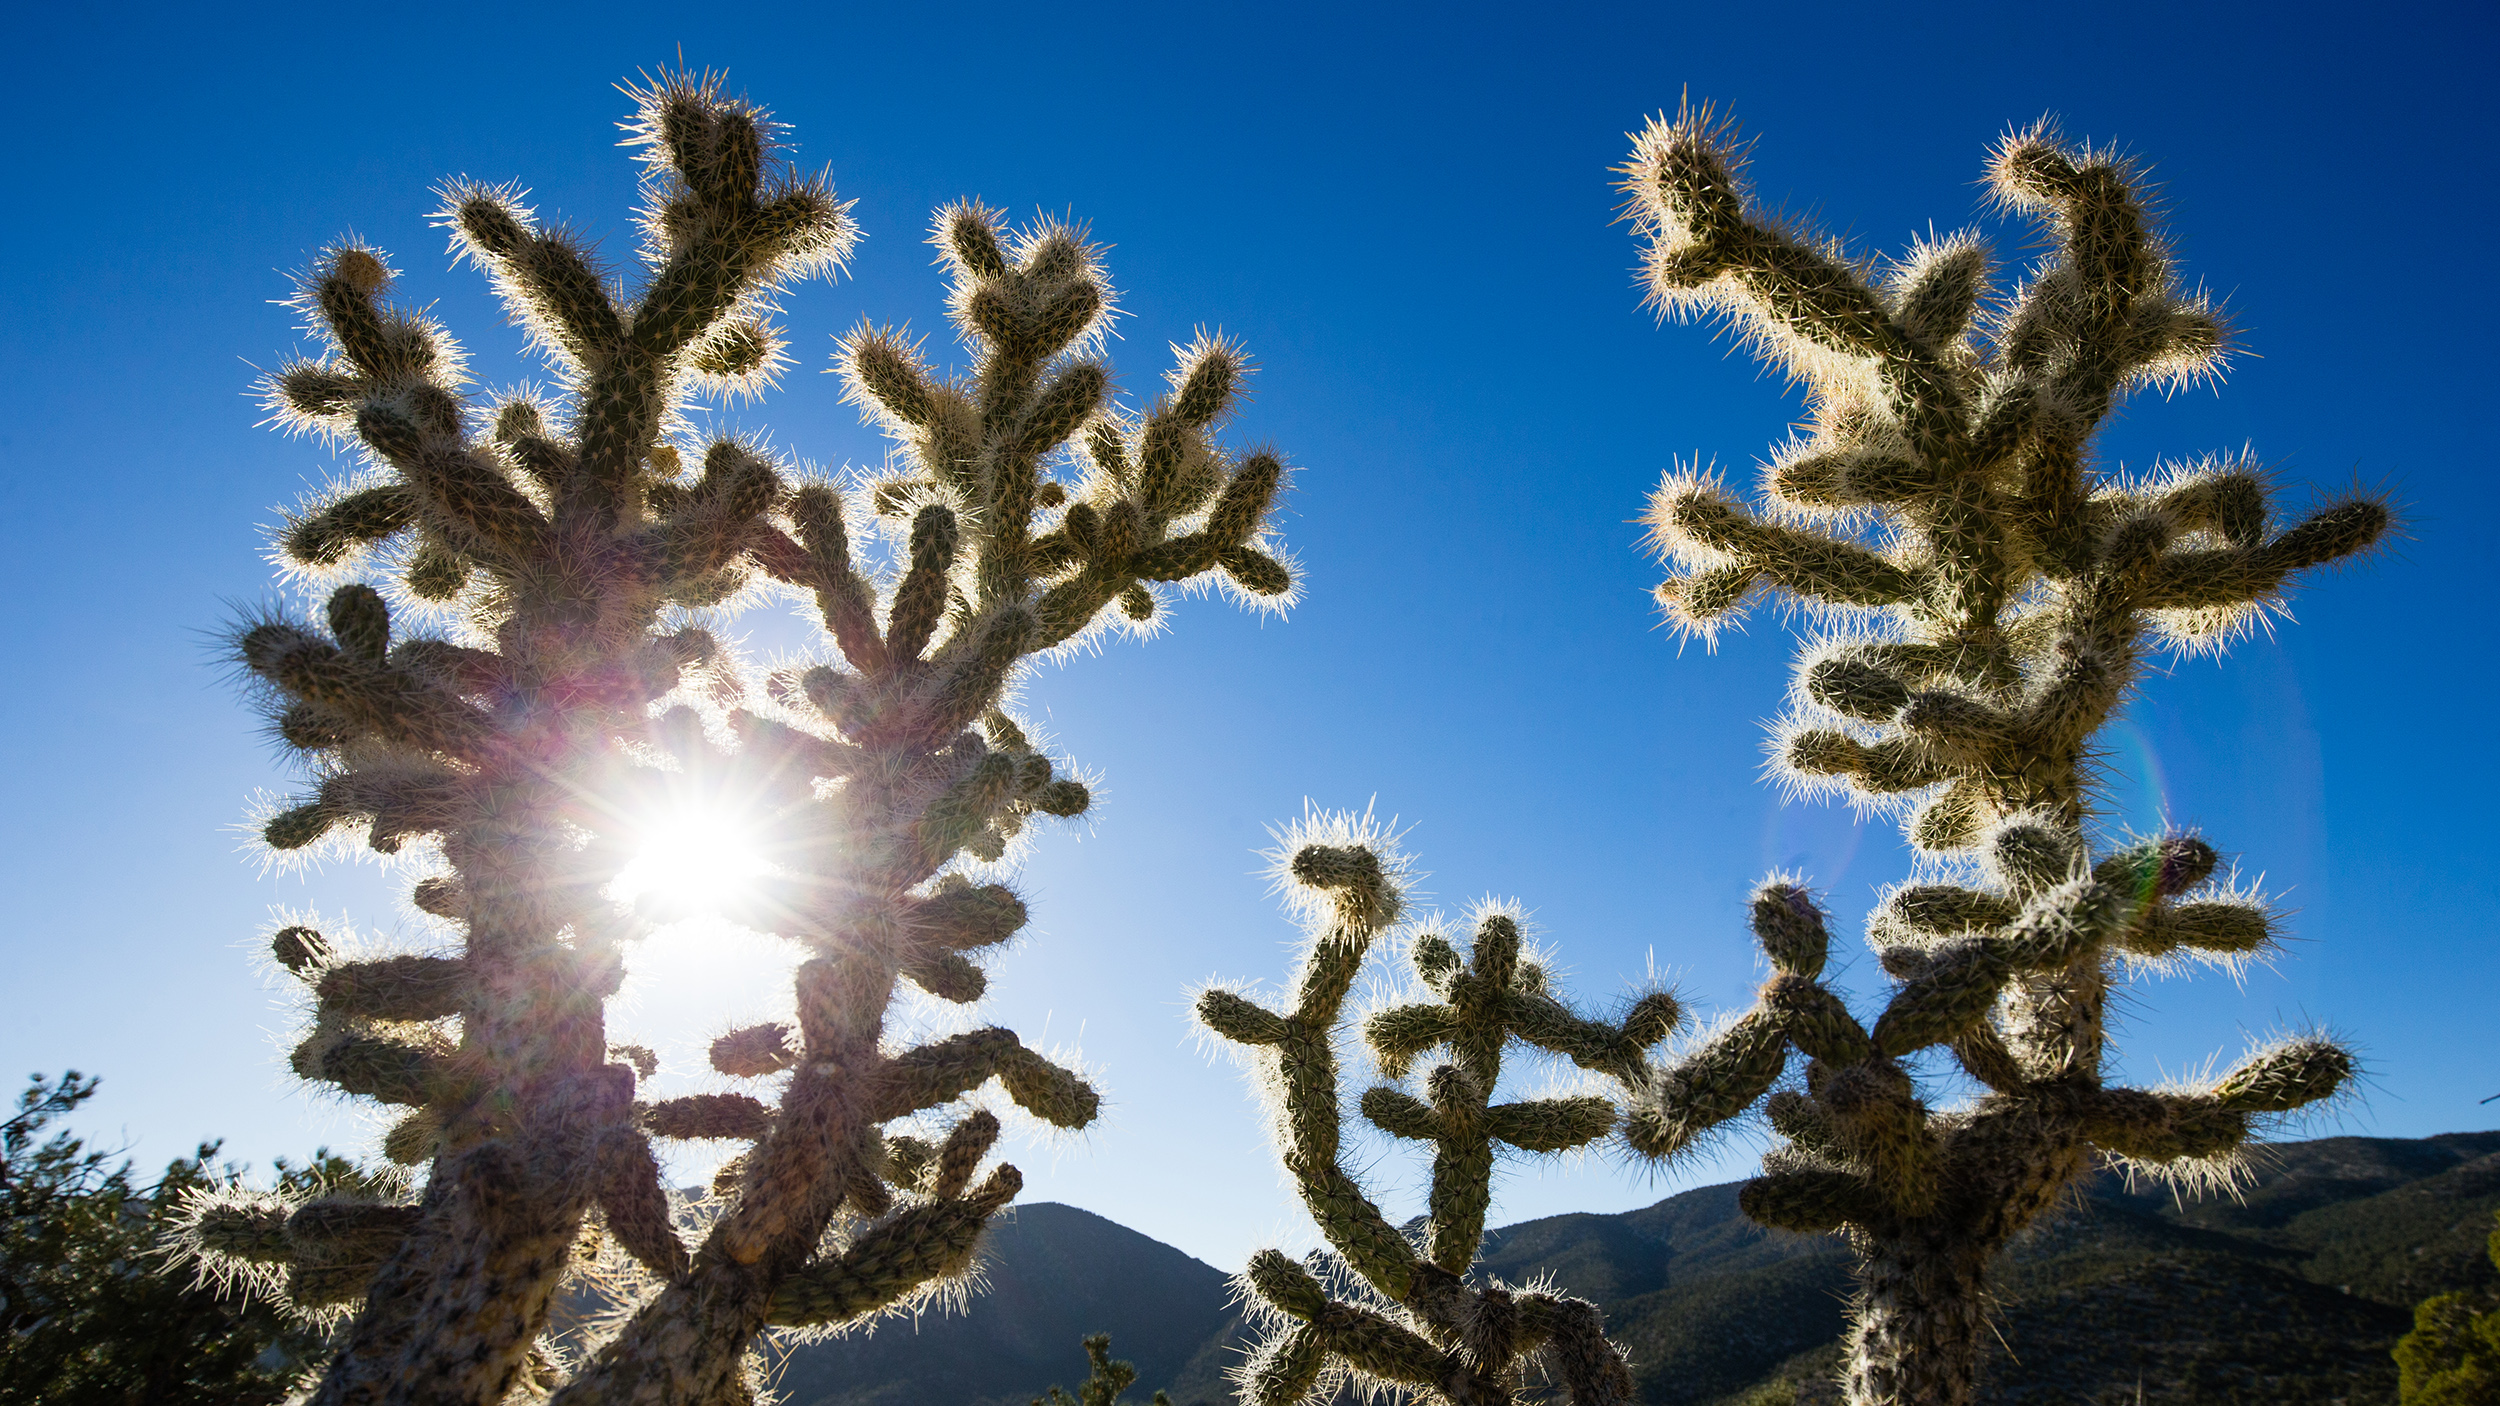 Cholla cacti in the Mount Irish Range.